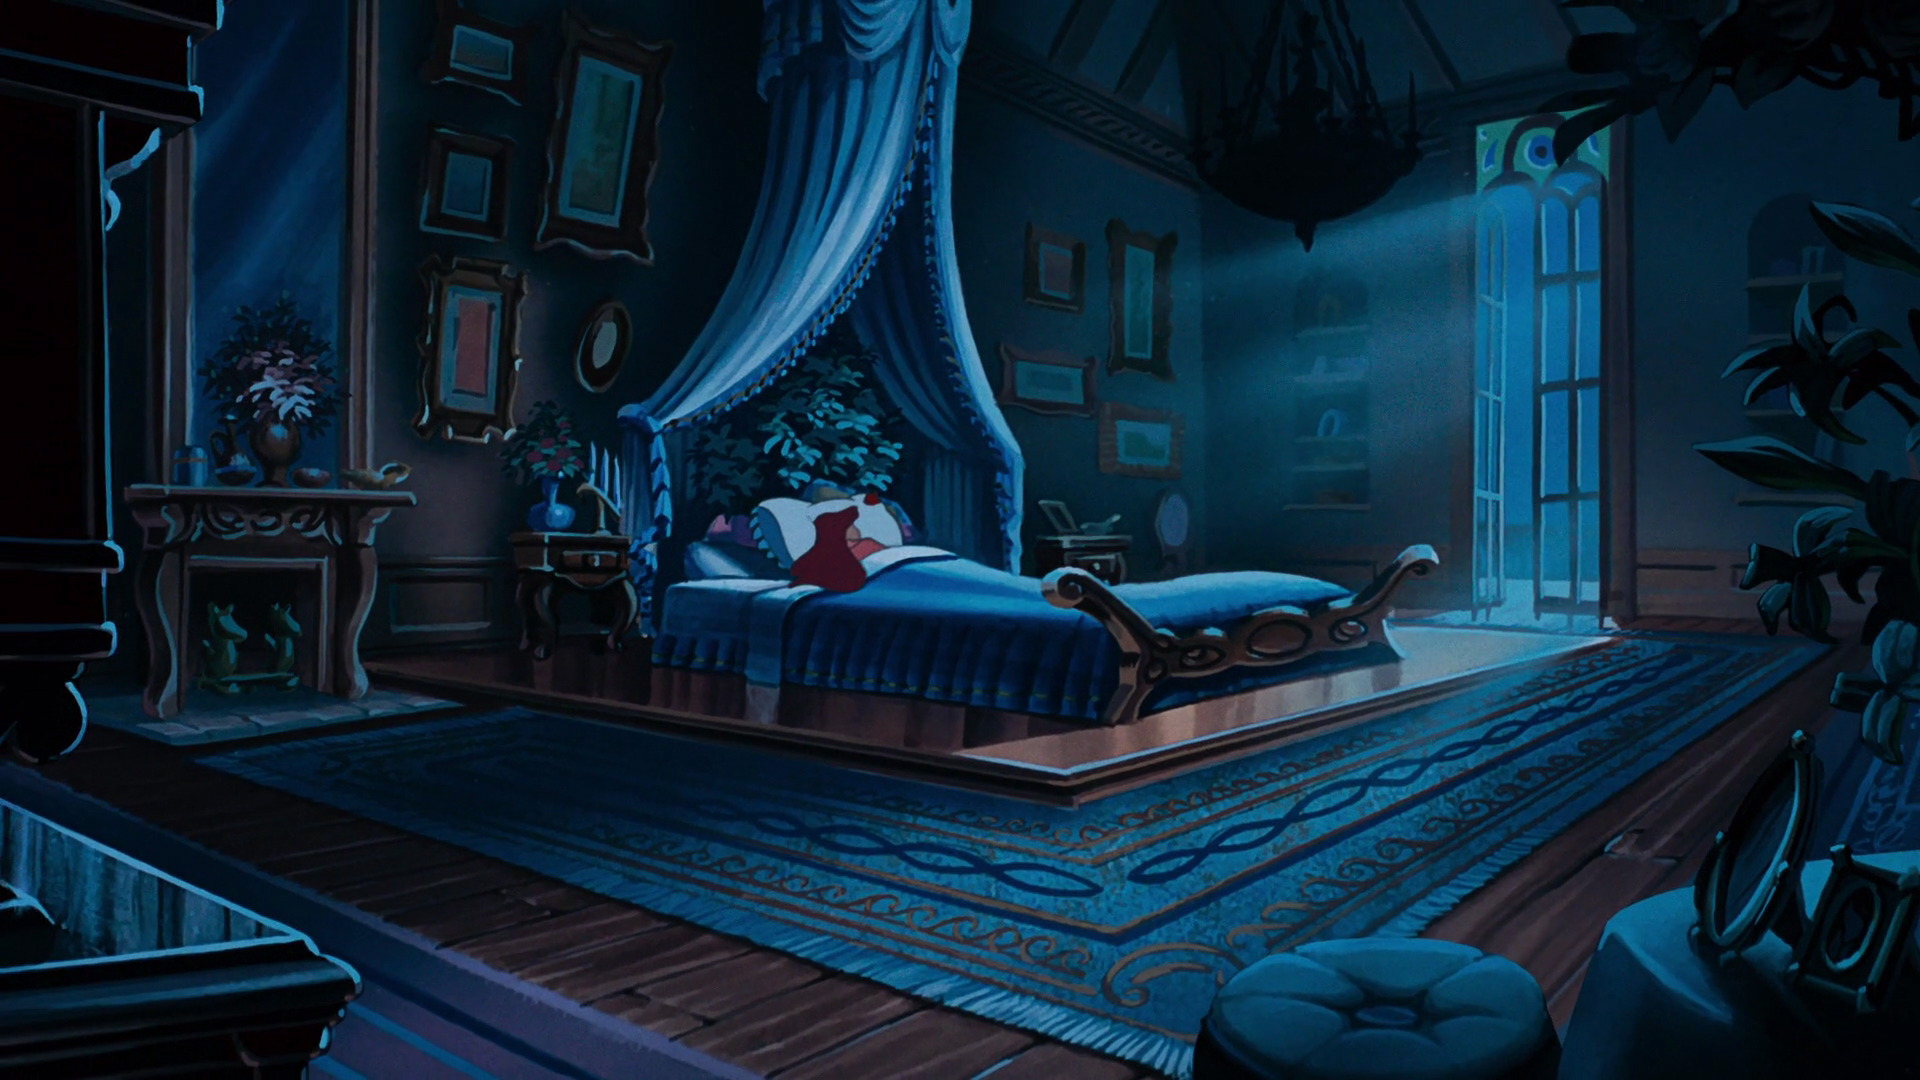 Little Mermaid 1080p Disneyscreencaps 6693